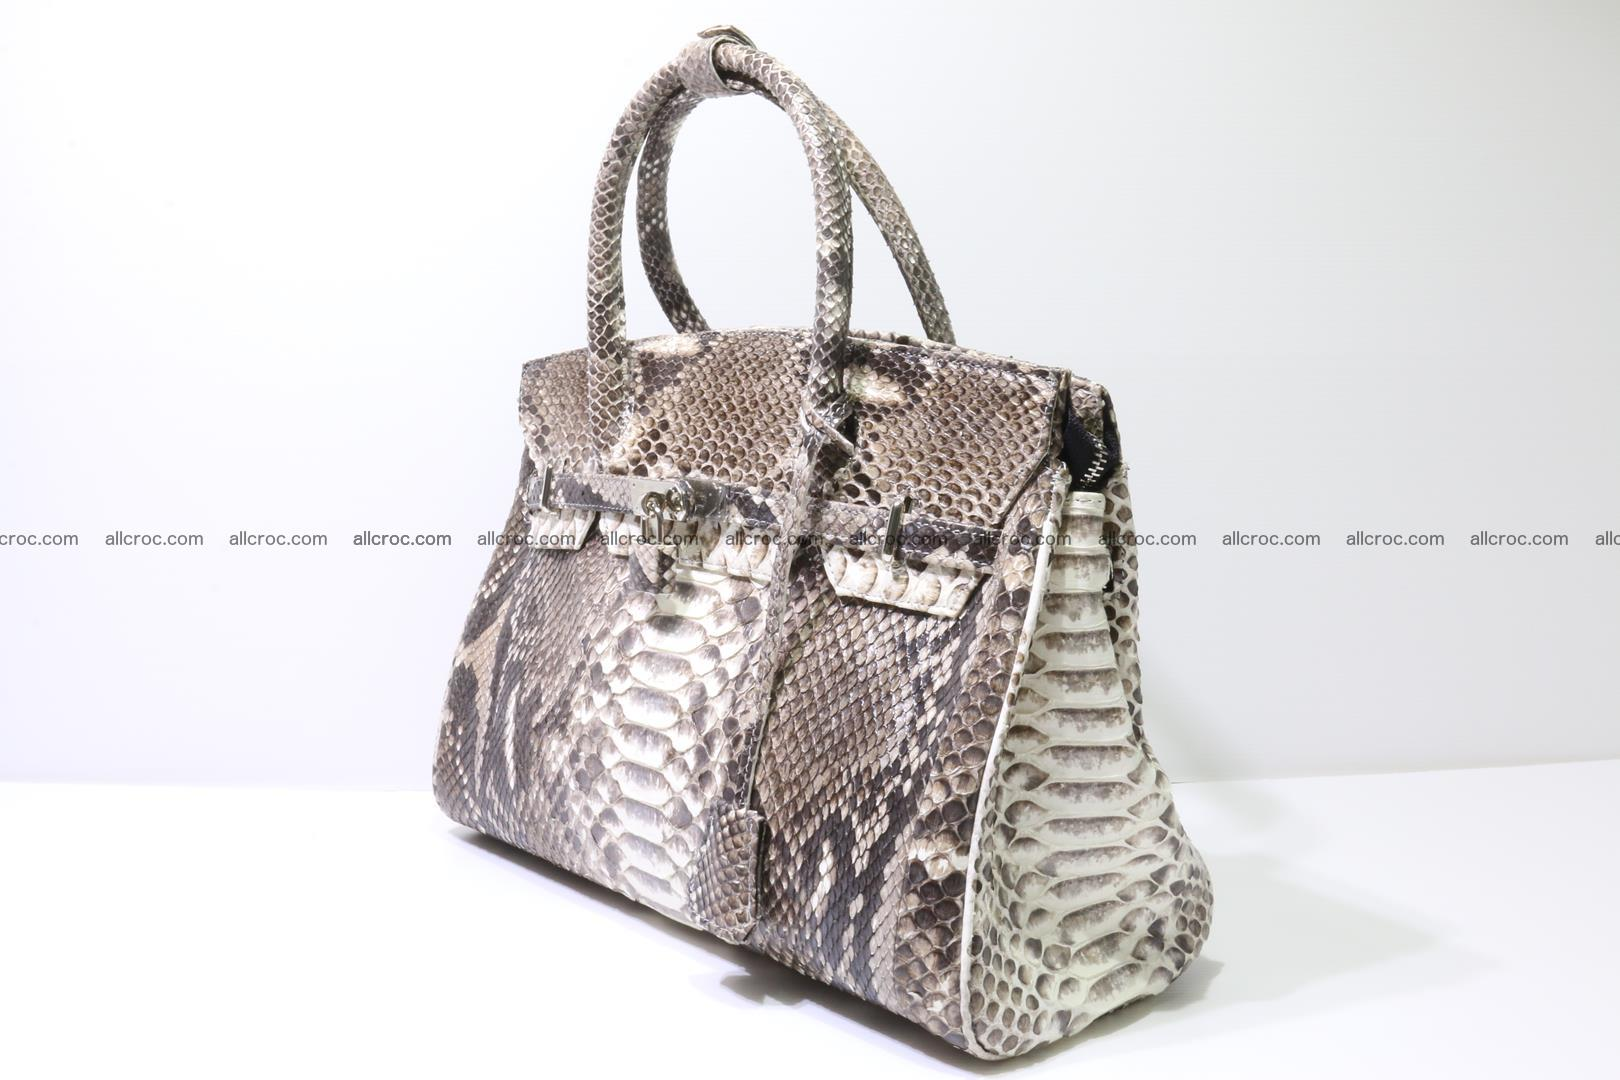 Python skin women's handbag replica of Birkin 211 Foto 2